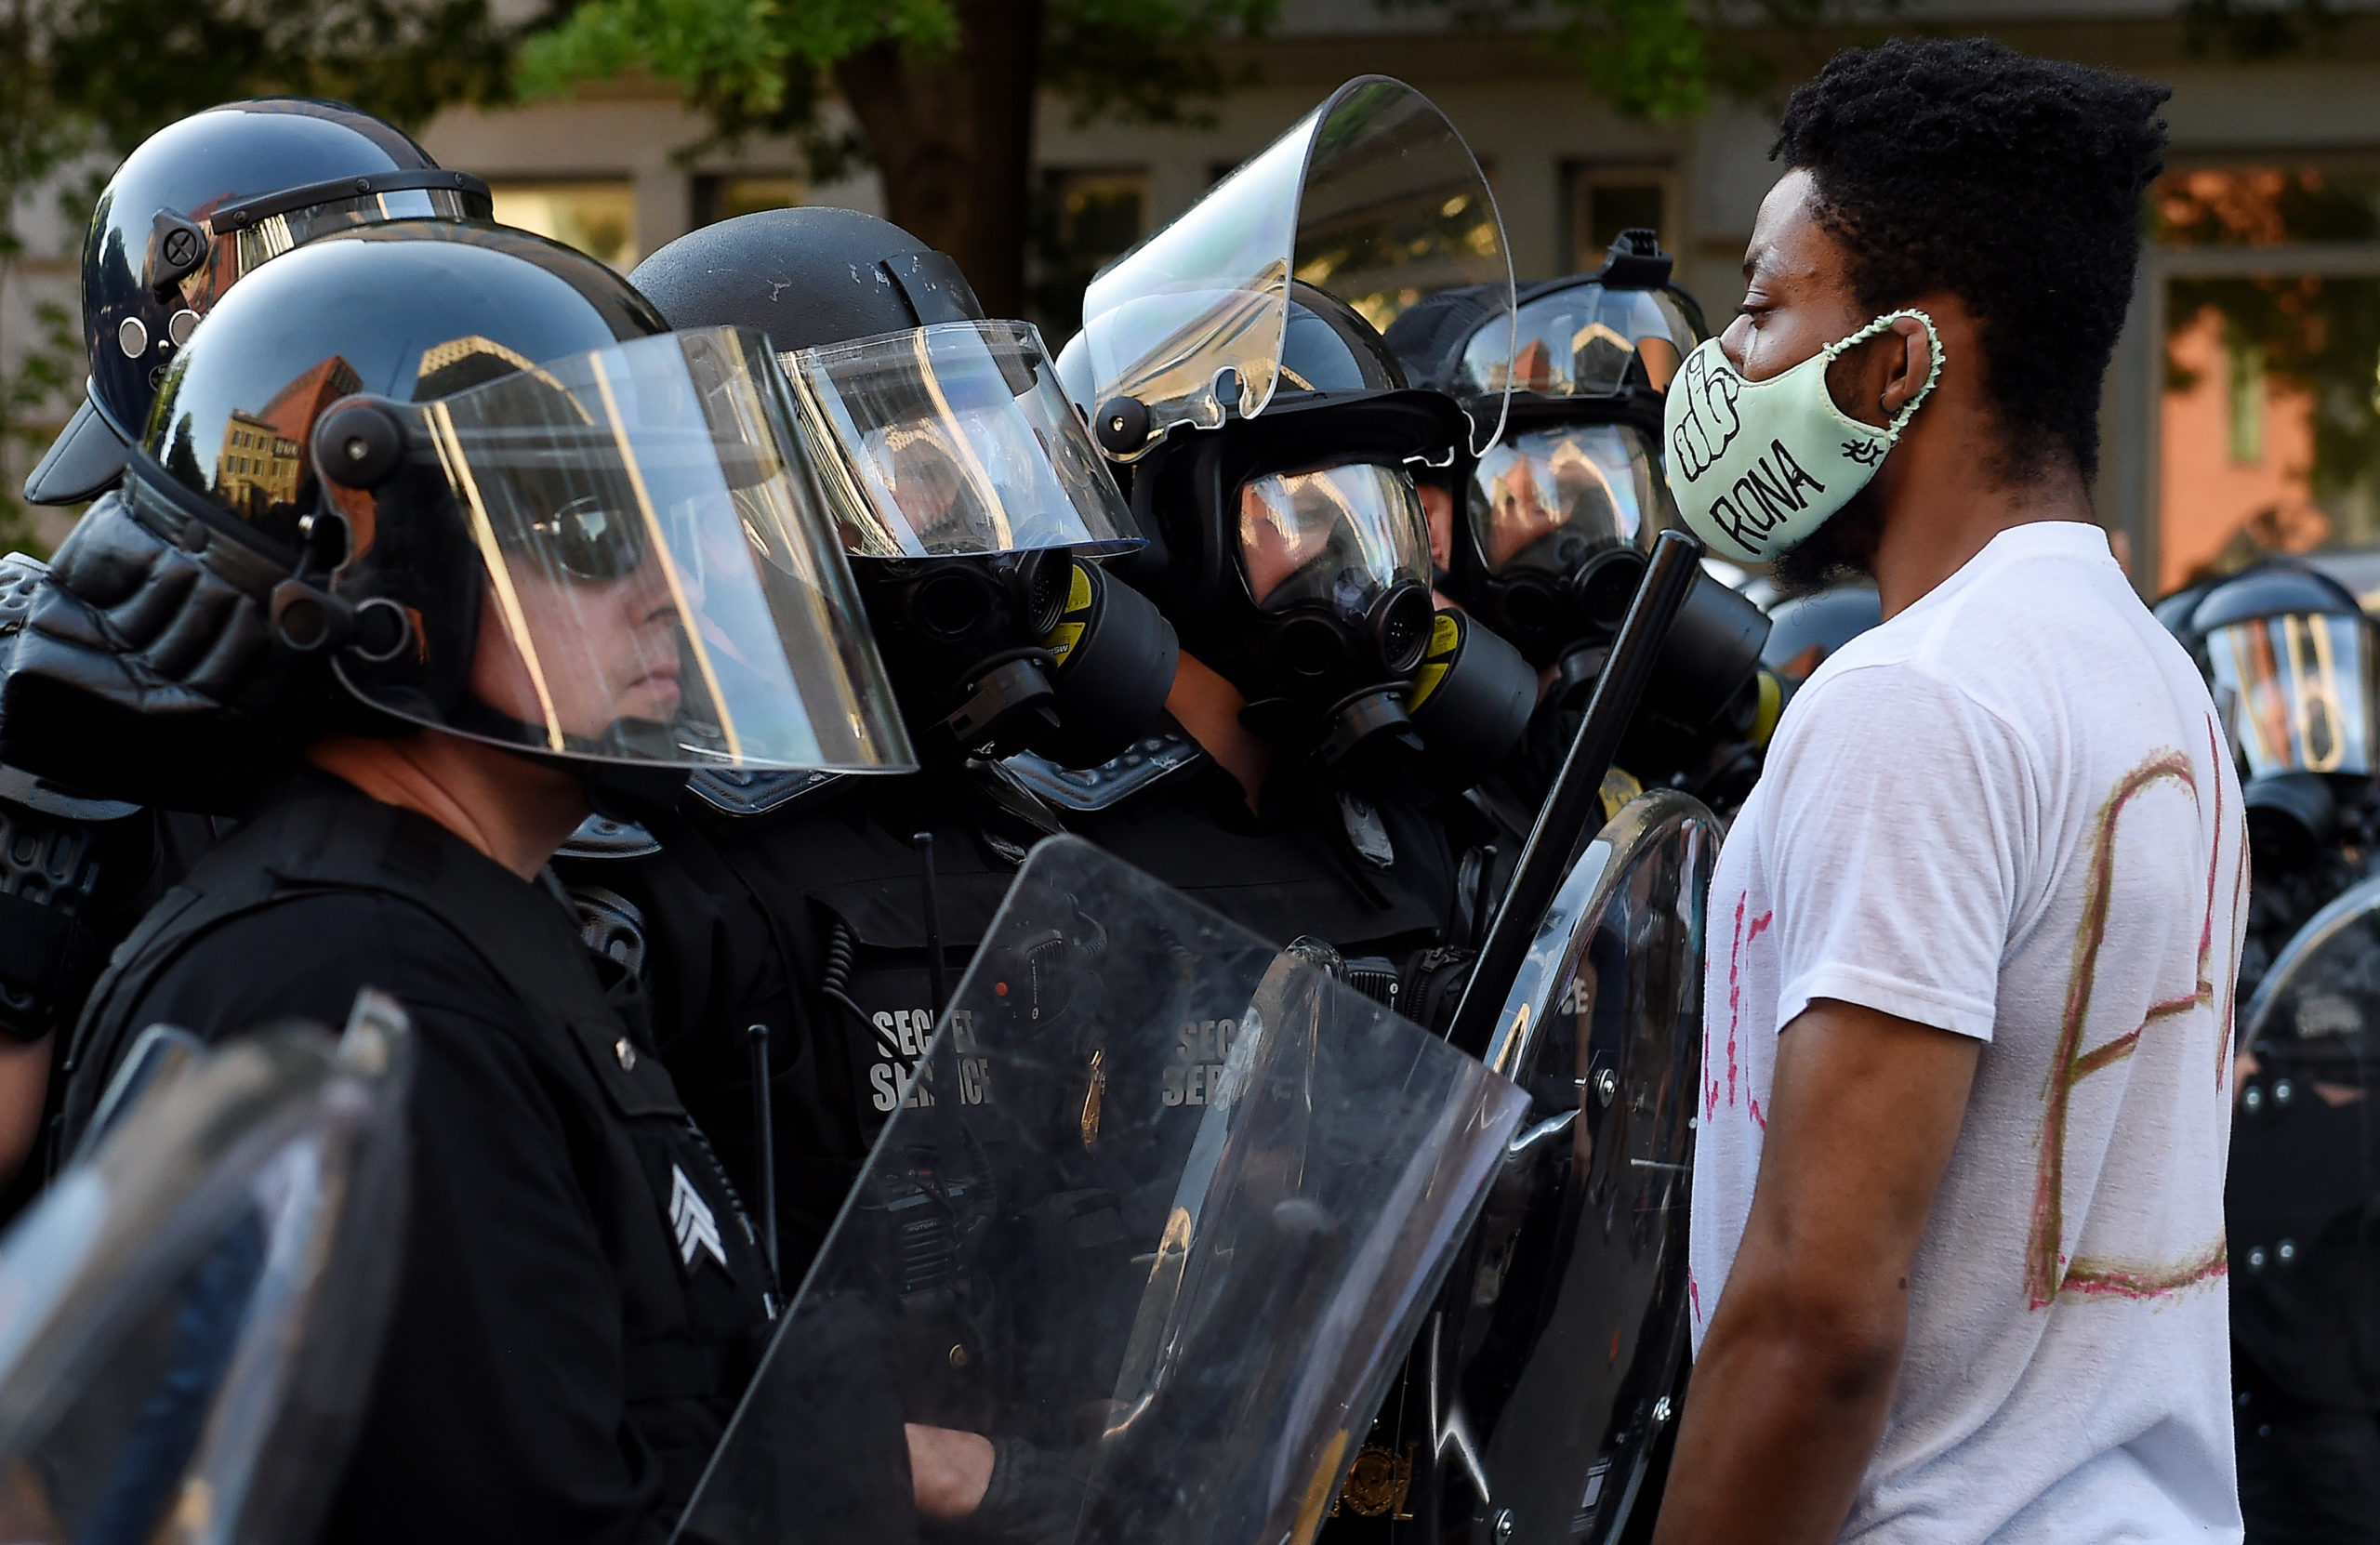 A row of police officers face off with demonstrators outside the White House to protest the death of George Floyd, who died in police custody in Minneapolis, in Washington, DC, on June 1, 2020.